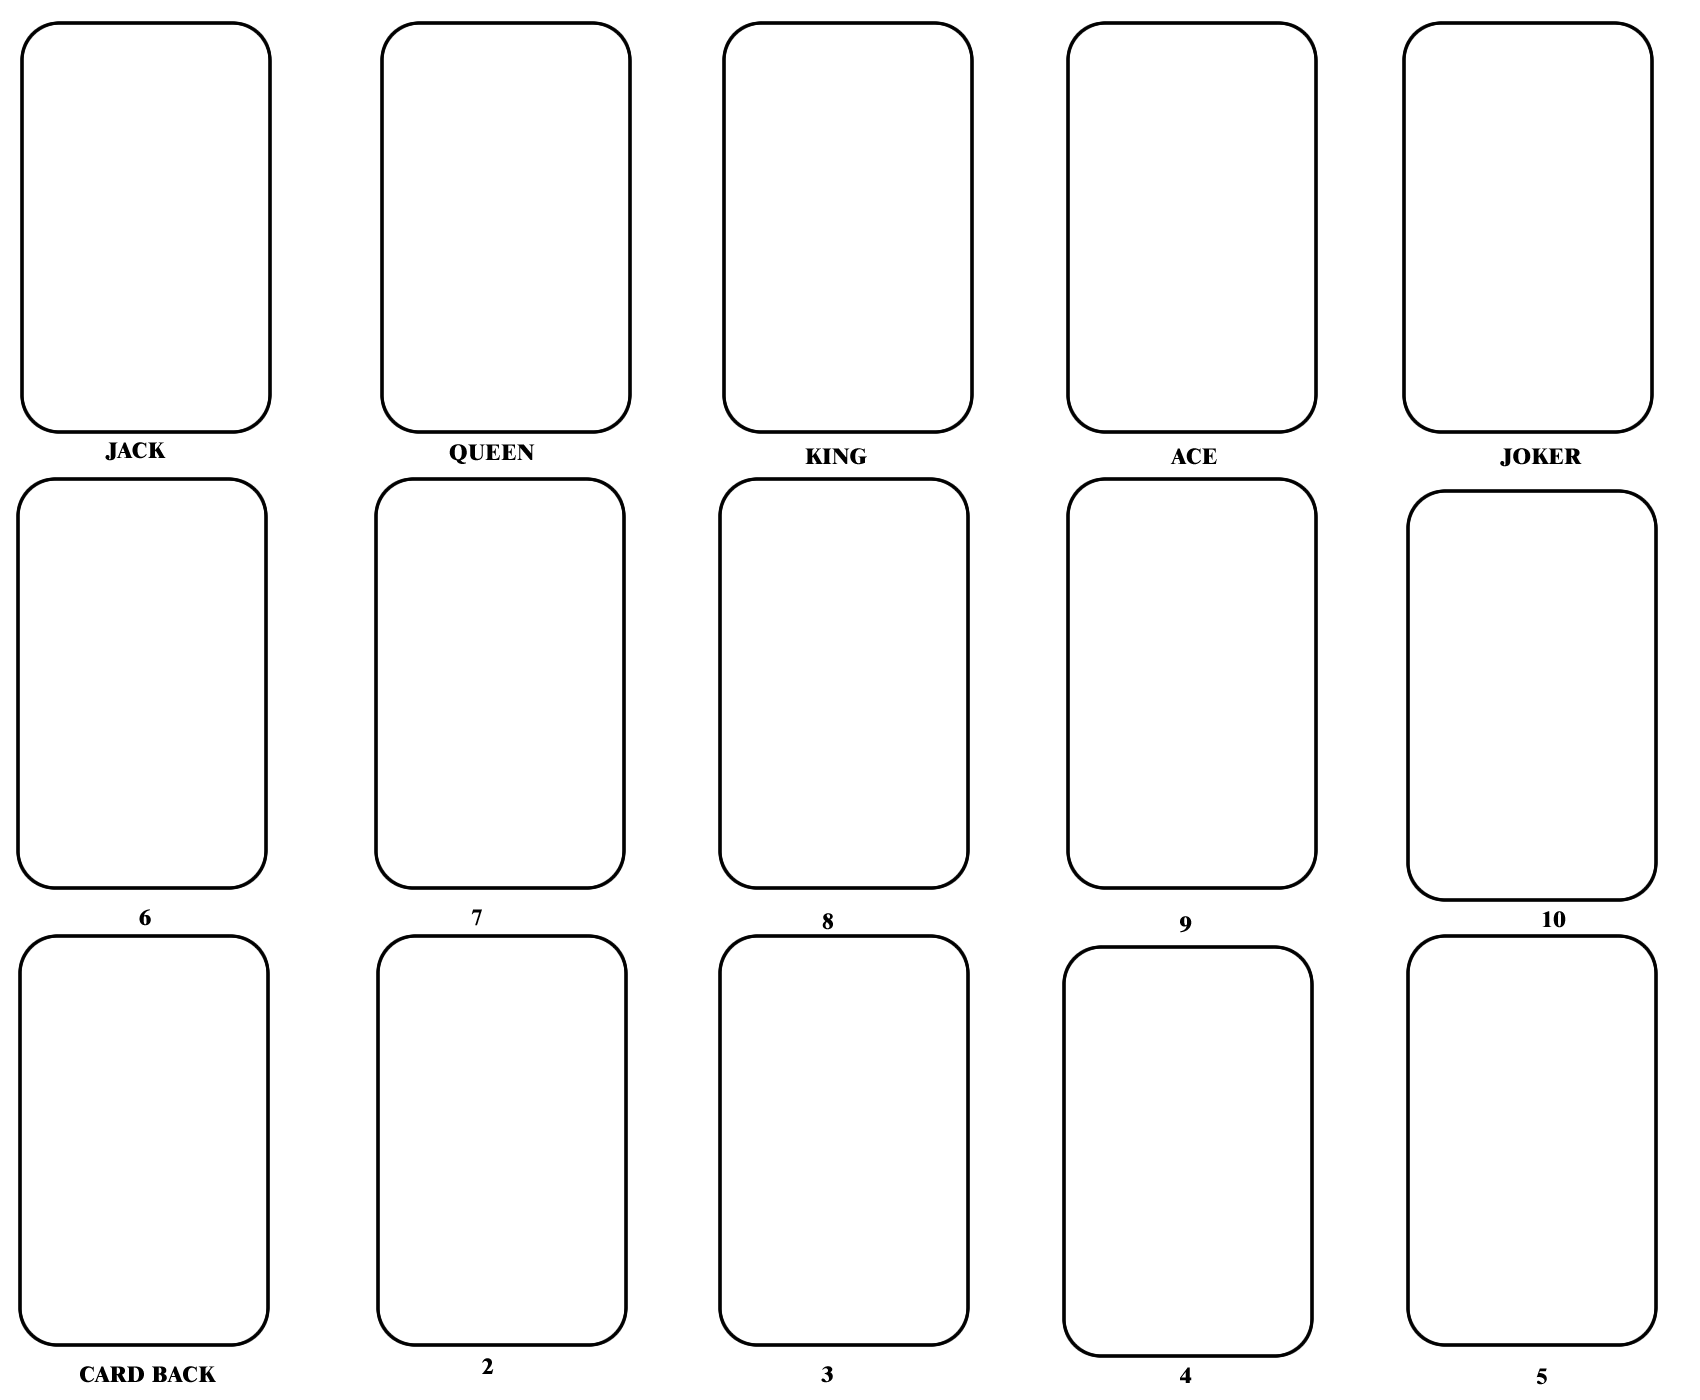 87 Format Card Sort Template Word Layouts by Card Sort Template Word